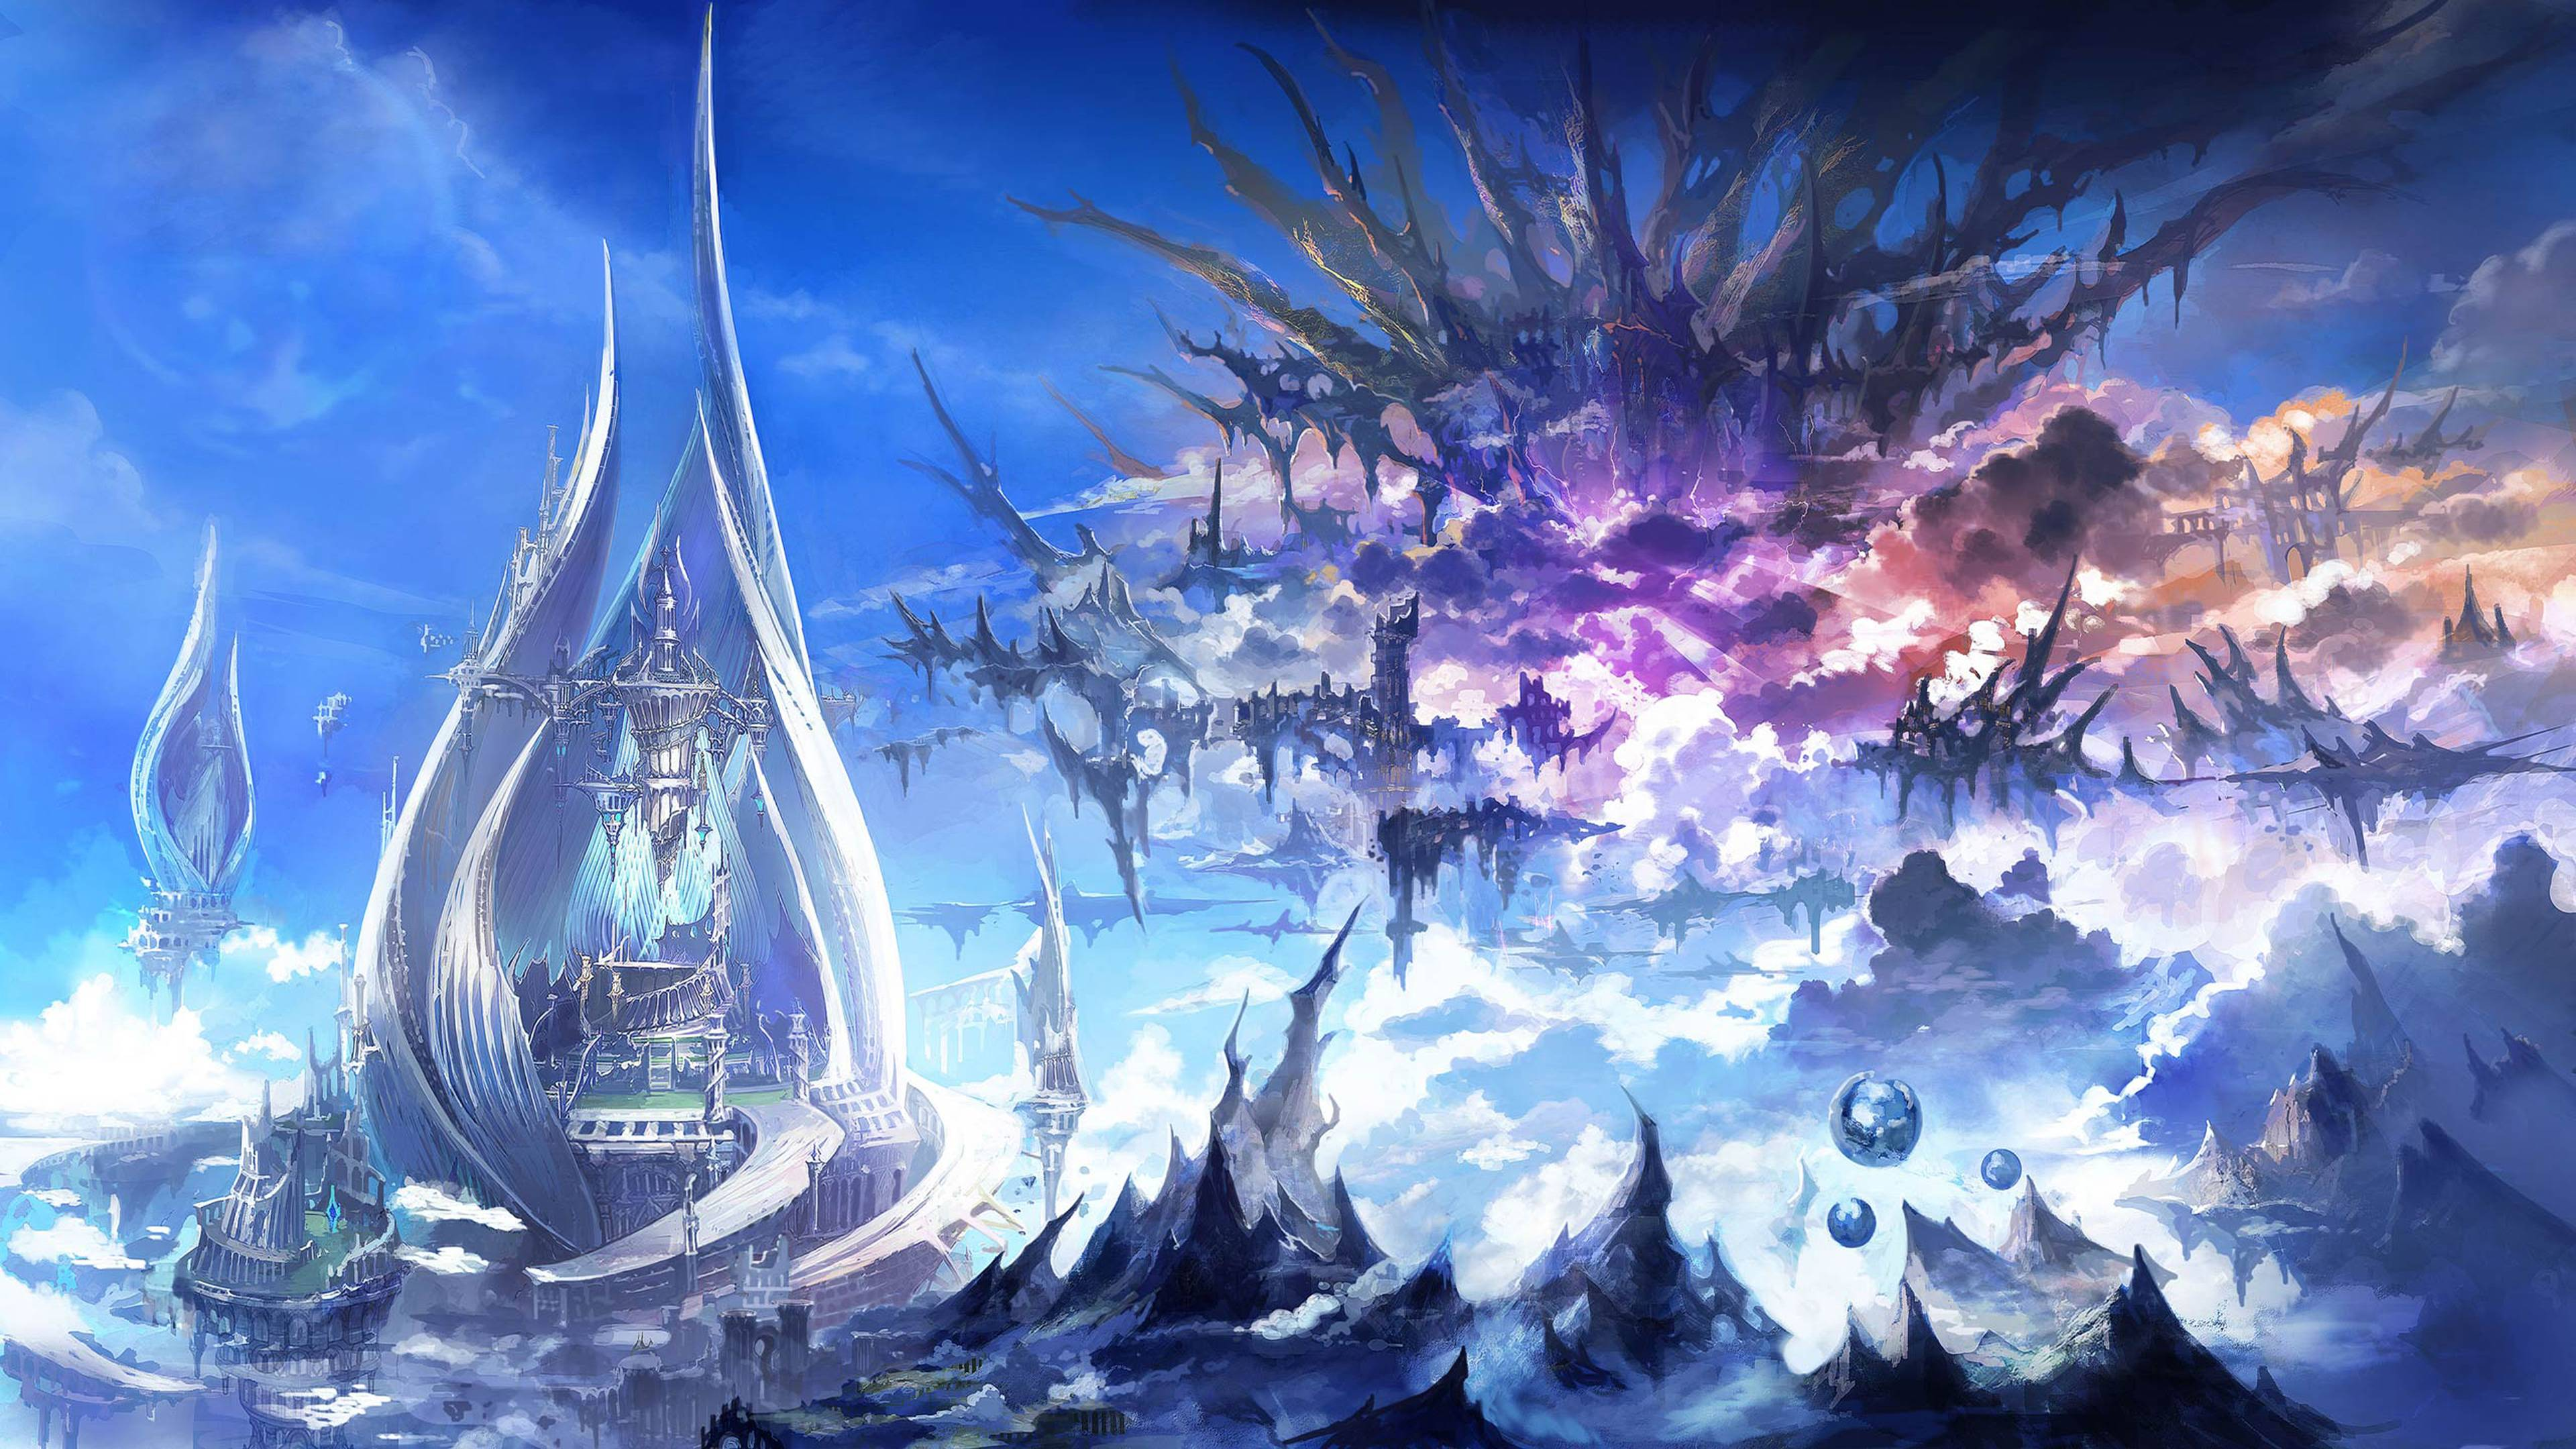 Final Fantasy Xiv Wallpapers Top Free Final Fantasy Xiv